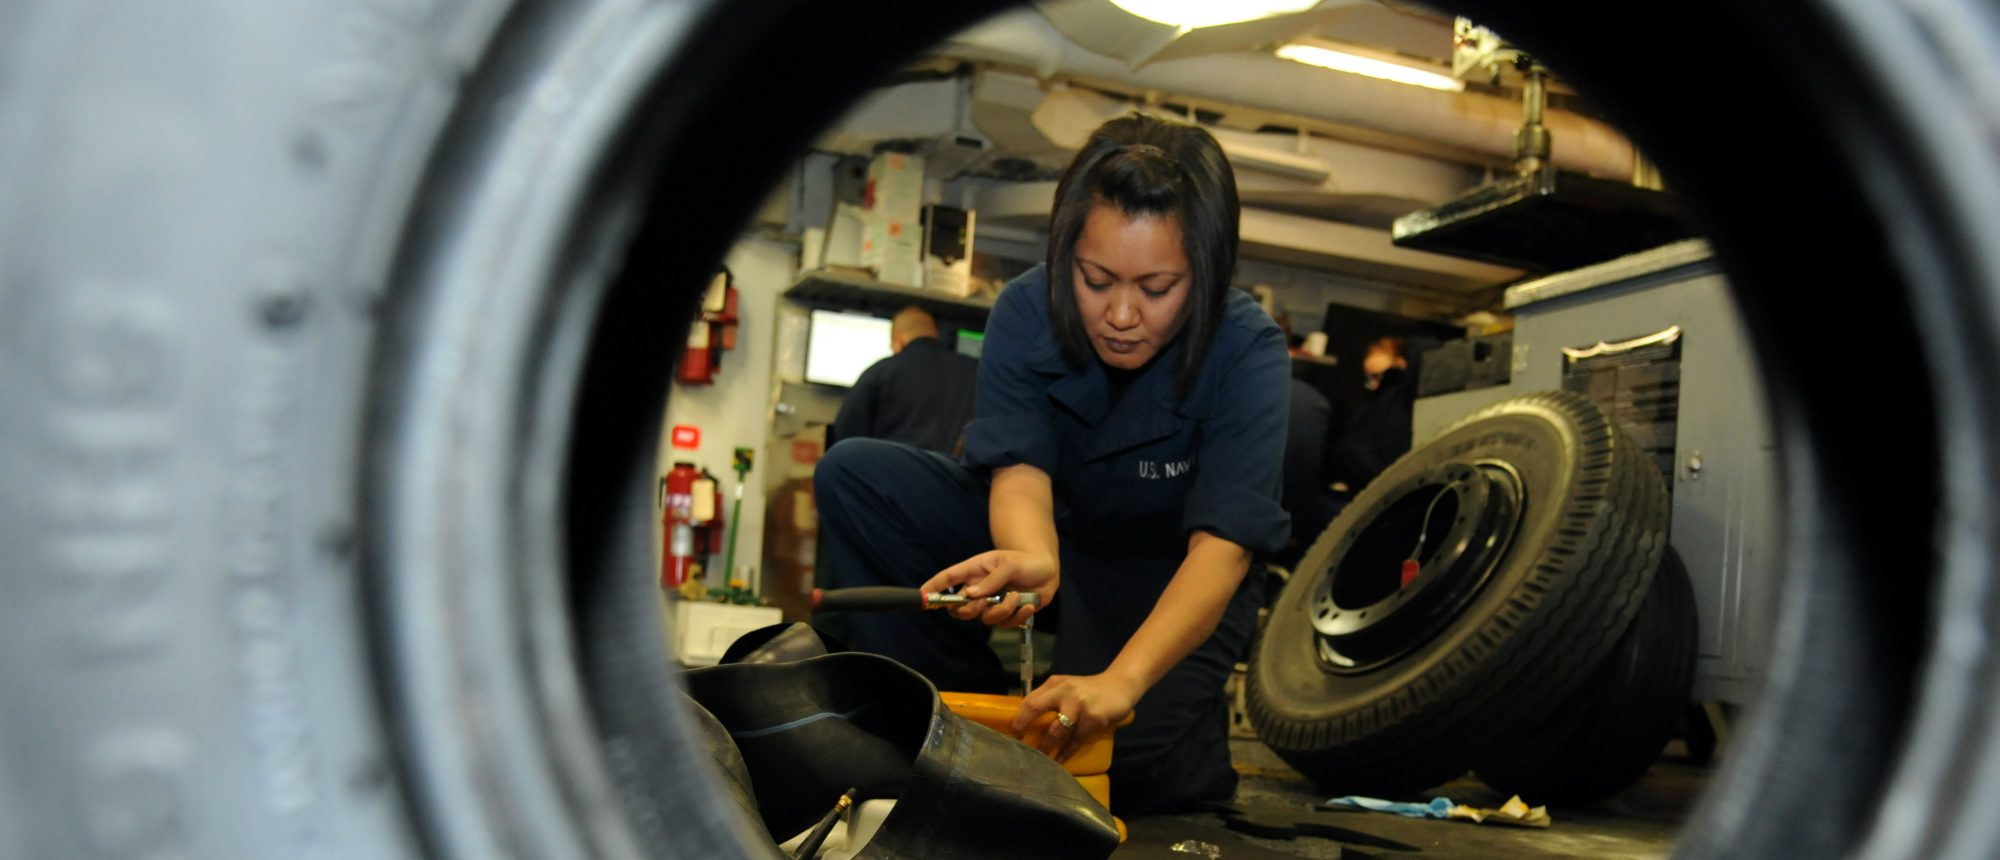 Aviation Support Equipment Technician Airman Gladys J. Domingo, assigned to the aviation intermediate maintenance department aboard the aircraft carrier USS George H.W. Bush (CVN 77), assembles a front tire for an aircraft tow tractor.  (U.S. Navy photo by Mass Communication Specialist Seaman Billy Ho/Released)